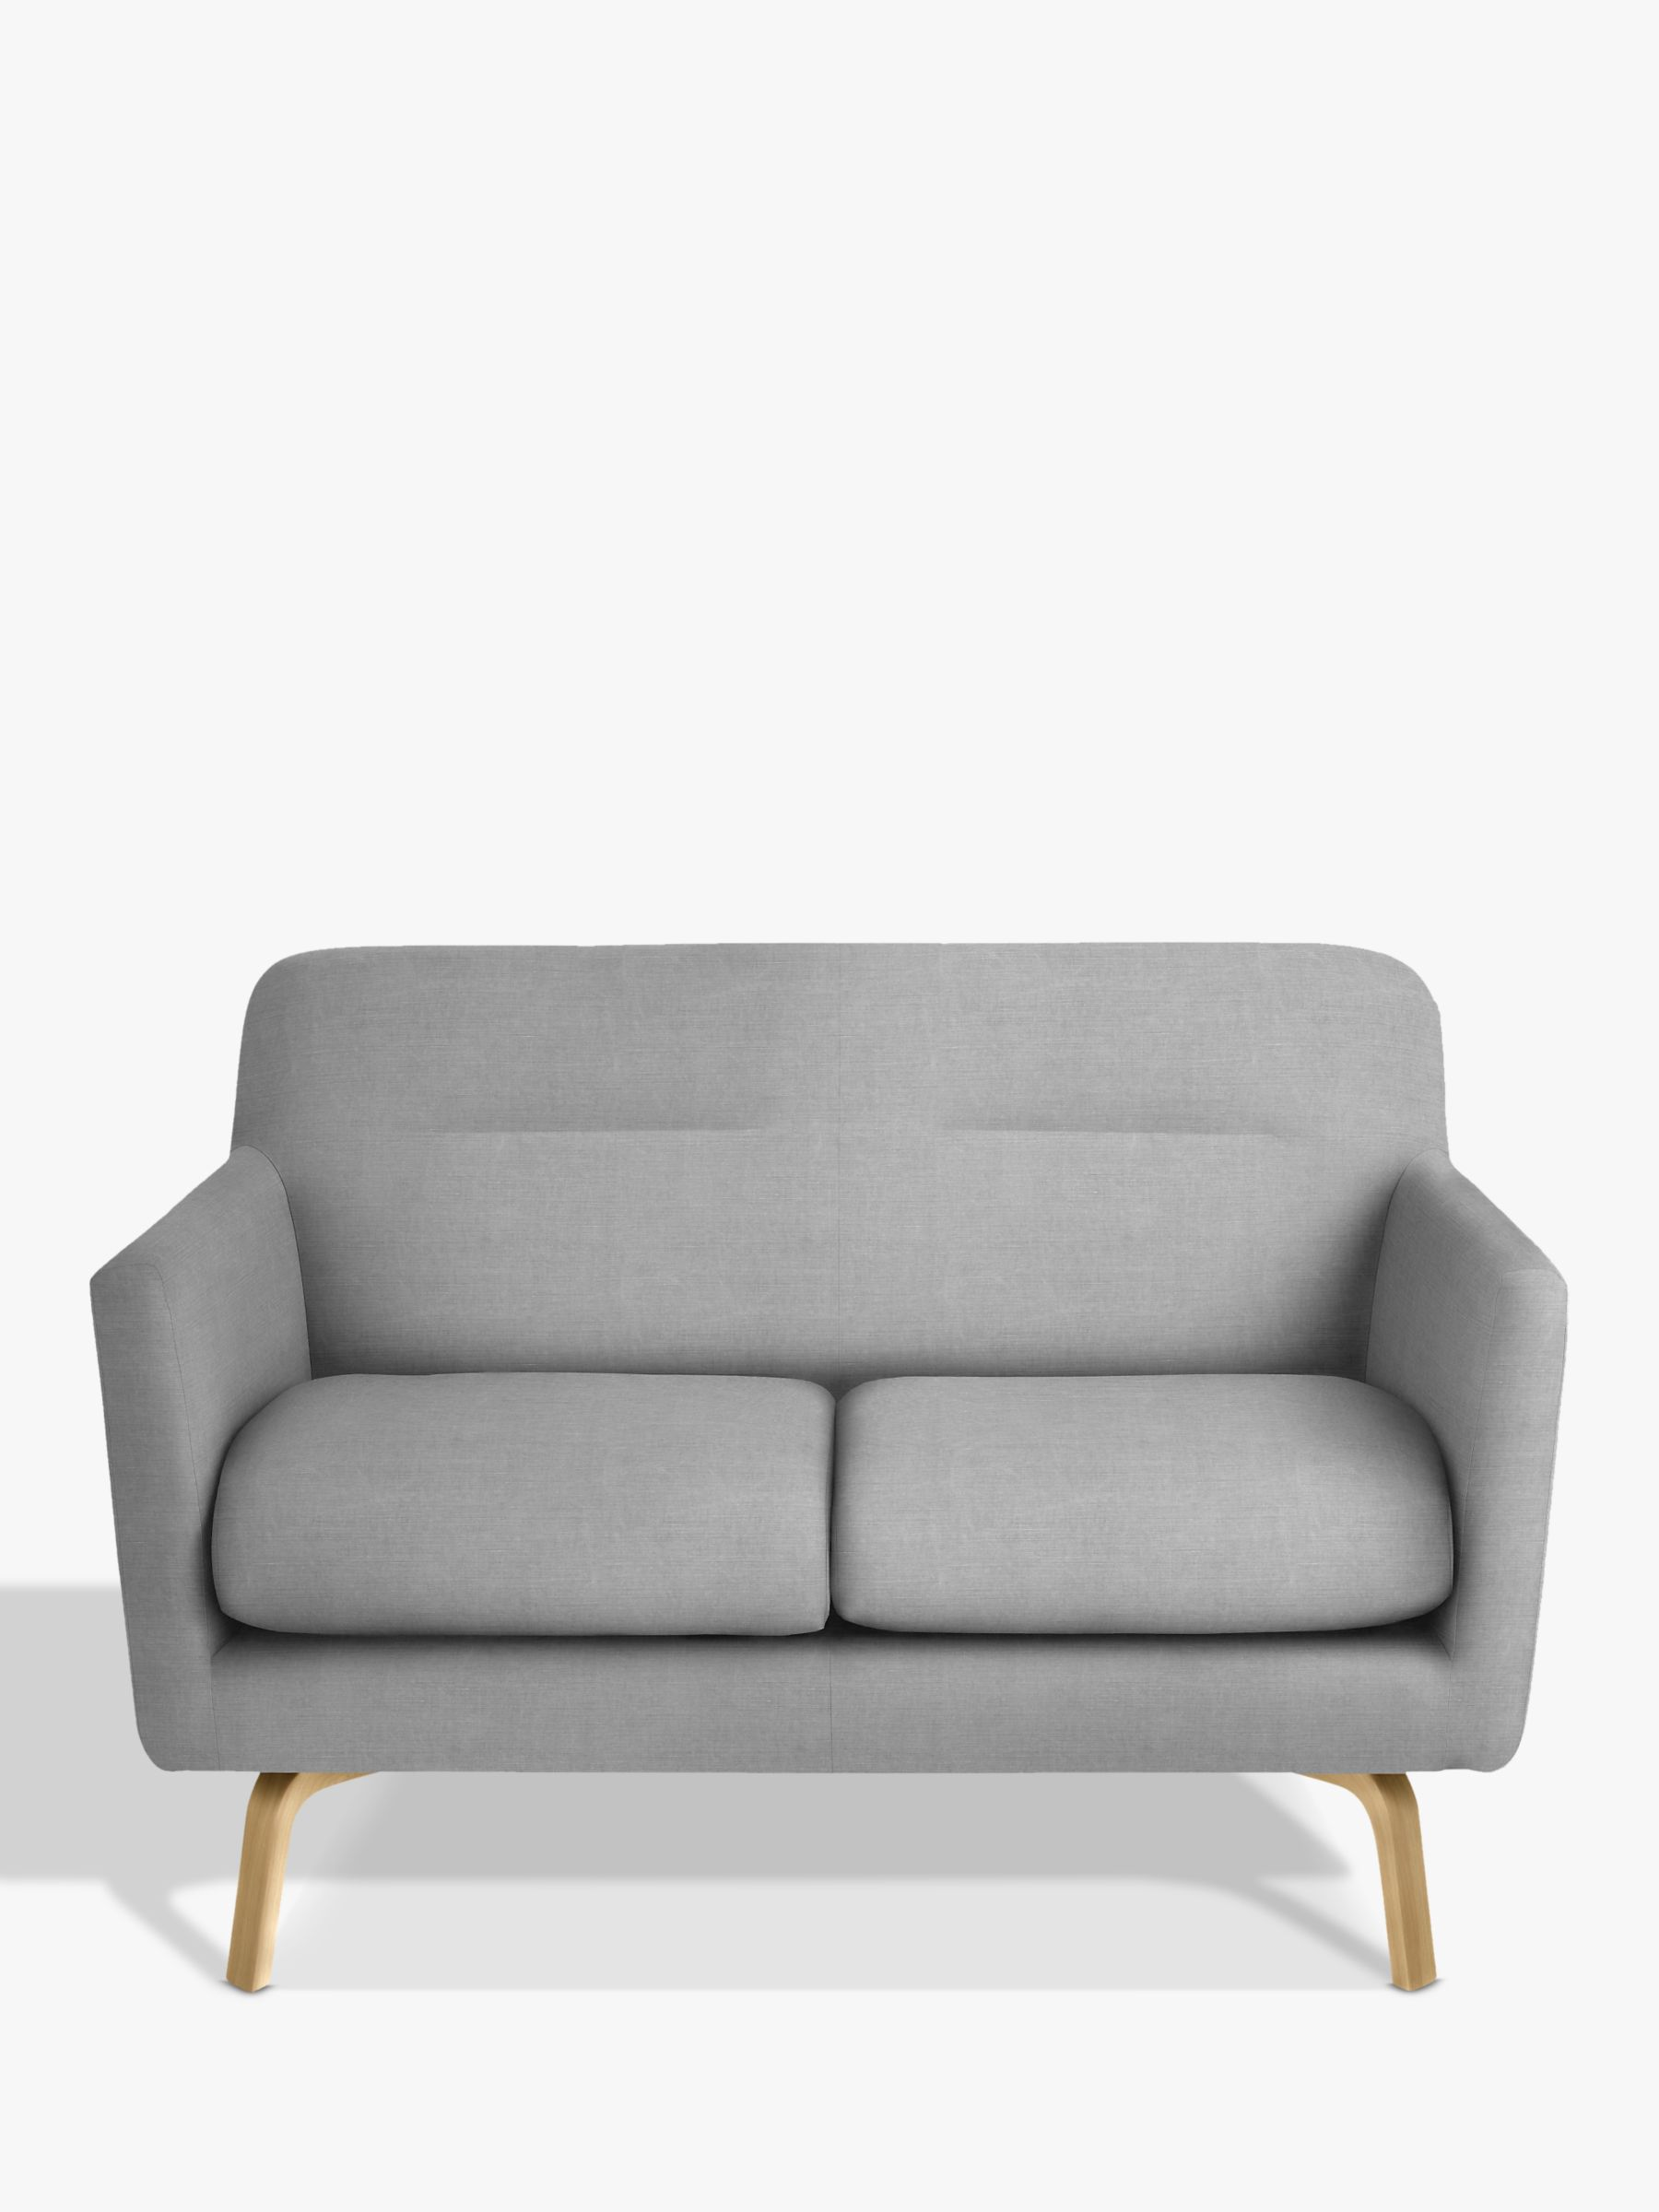 Sofa House Greece House By John Lewis Archie Ii Small 2 Seater Sofa